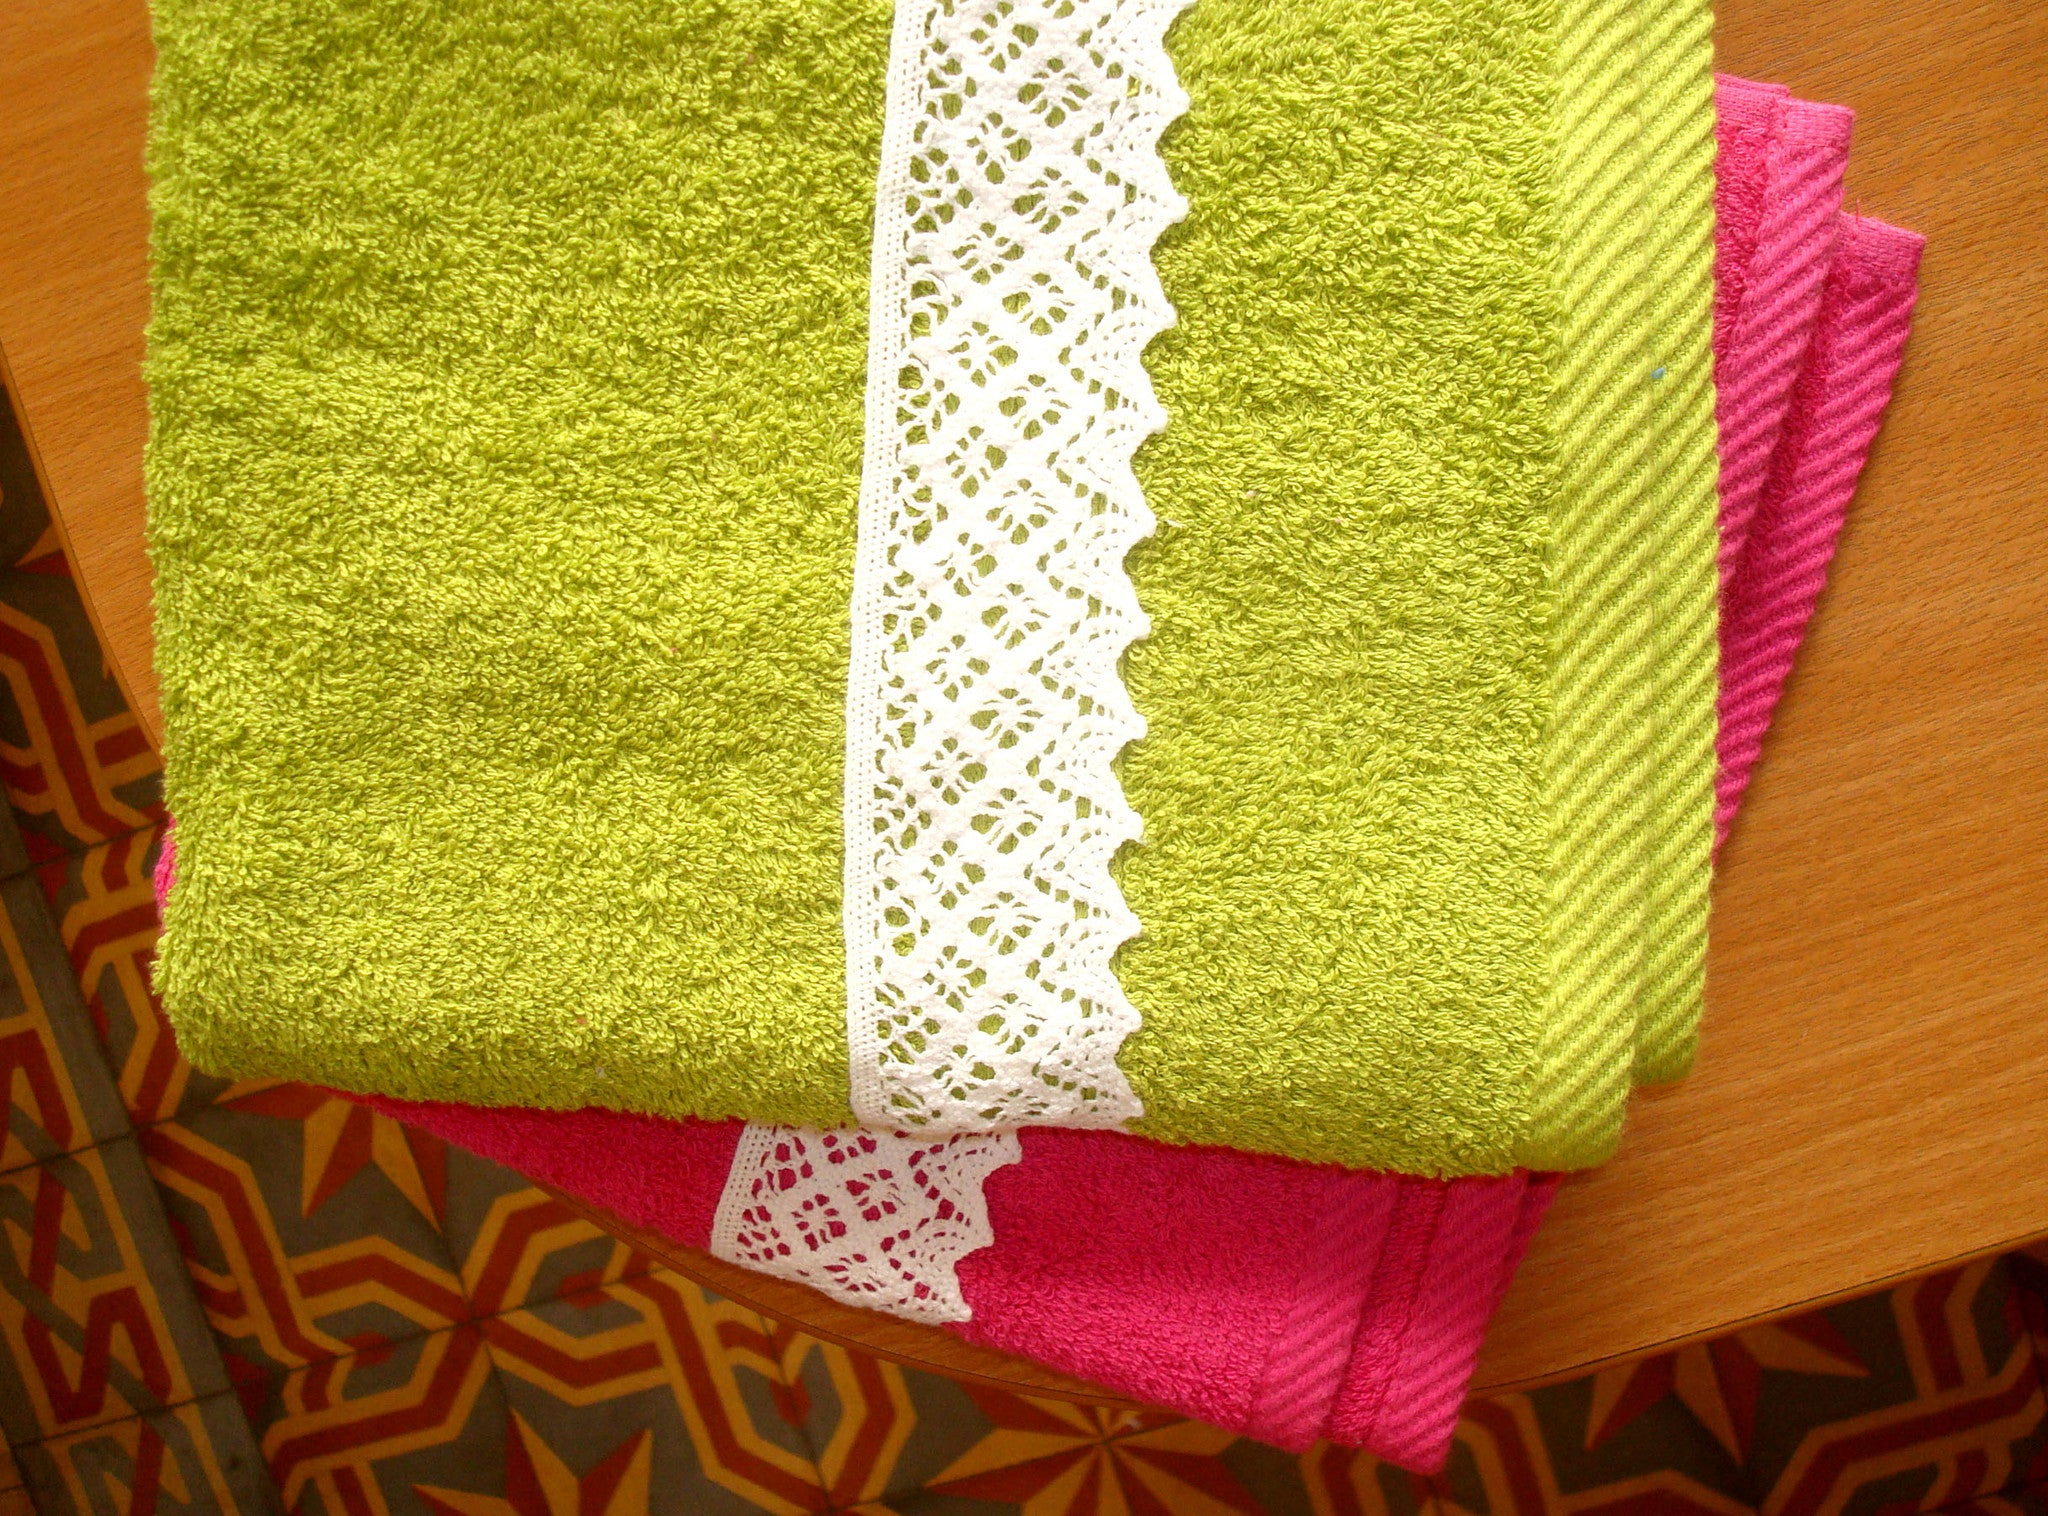 Triangular Edge Lace on Hot Color Towels|مناشف ذات دانتيل كروشيه مسنن